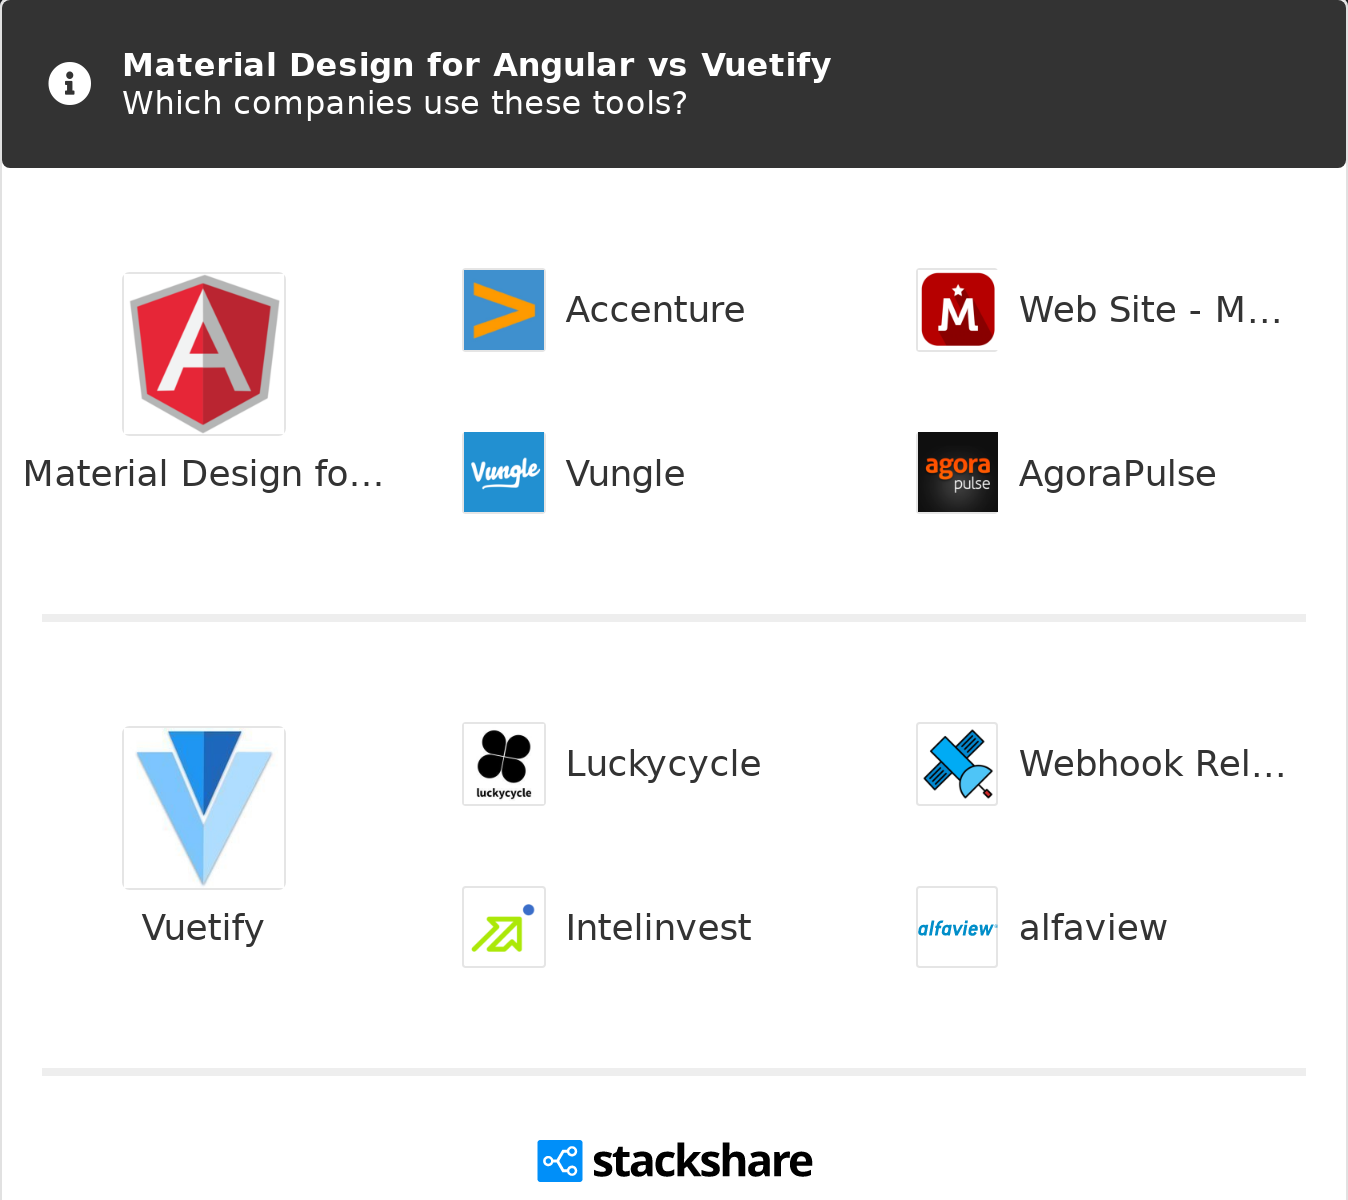 Material Design for Angular vs Vuetify   What are the